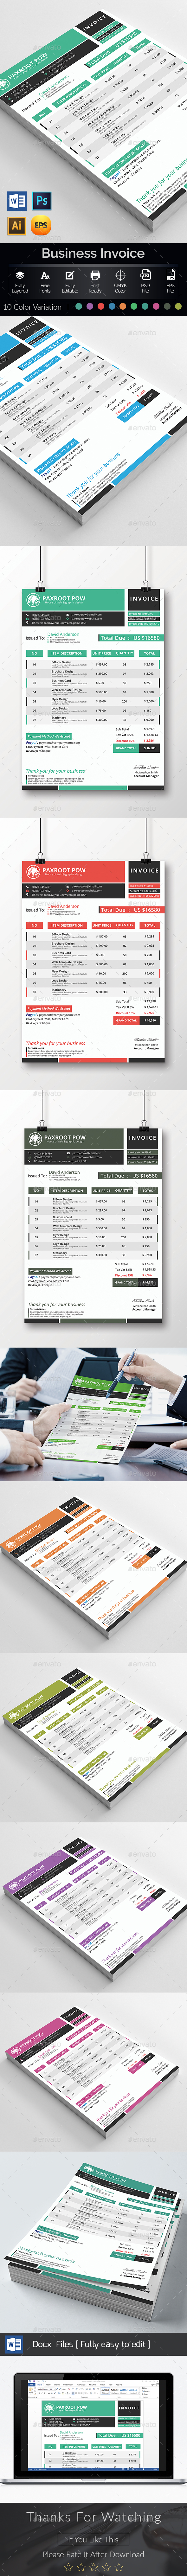 Invoice Template With Ms Word - Proposals & Invoices Stationery